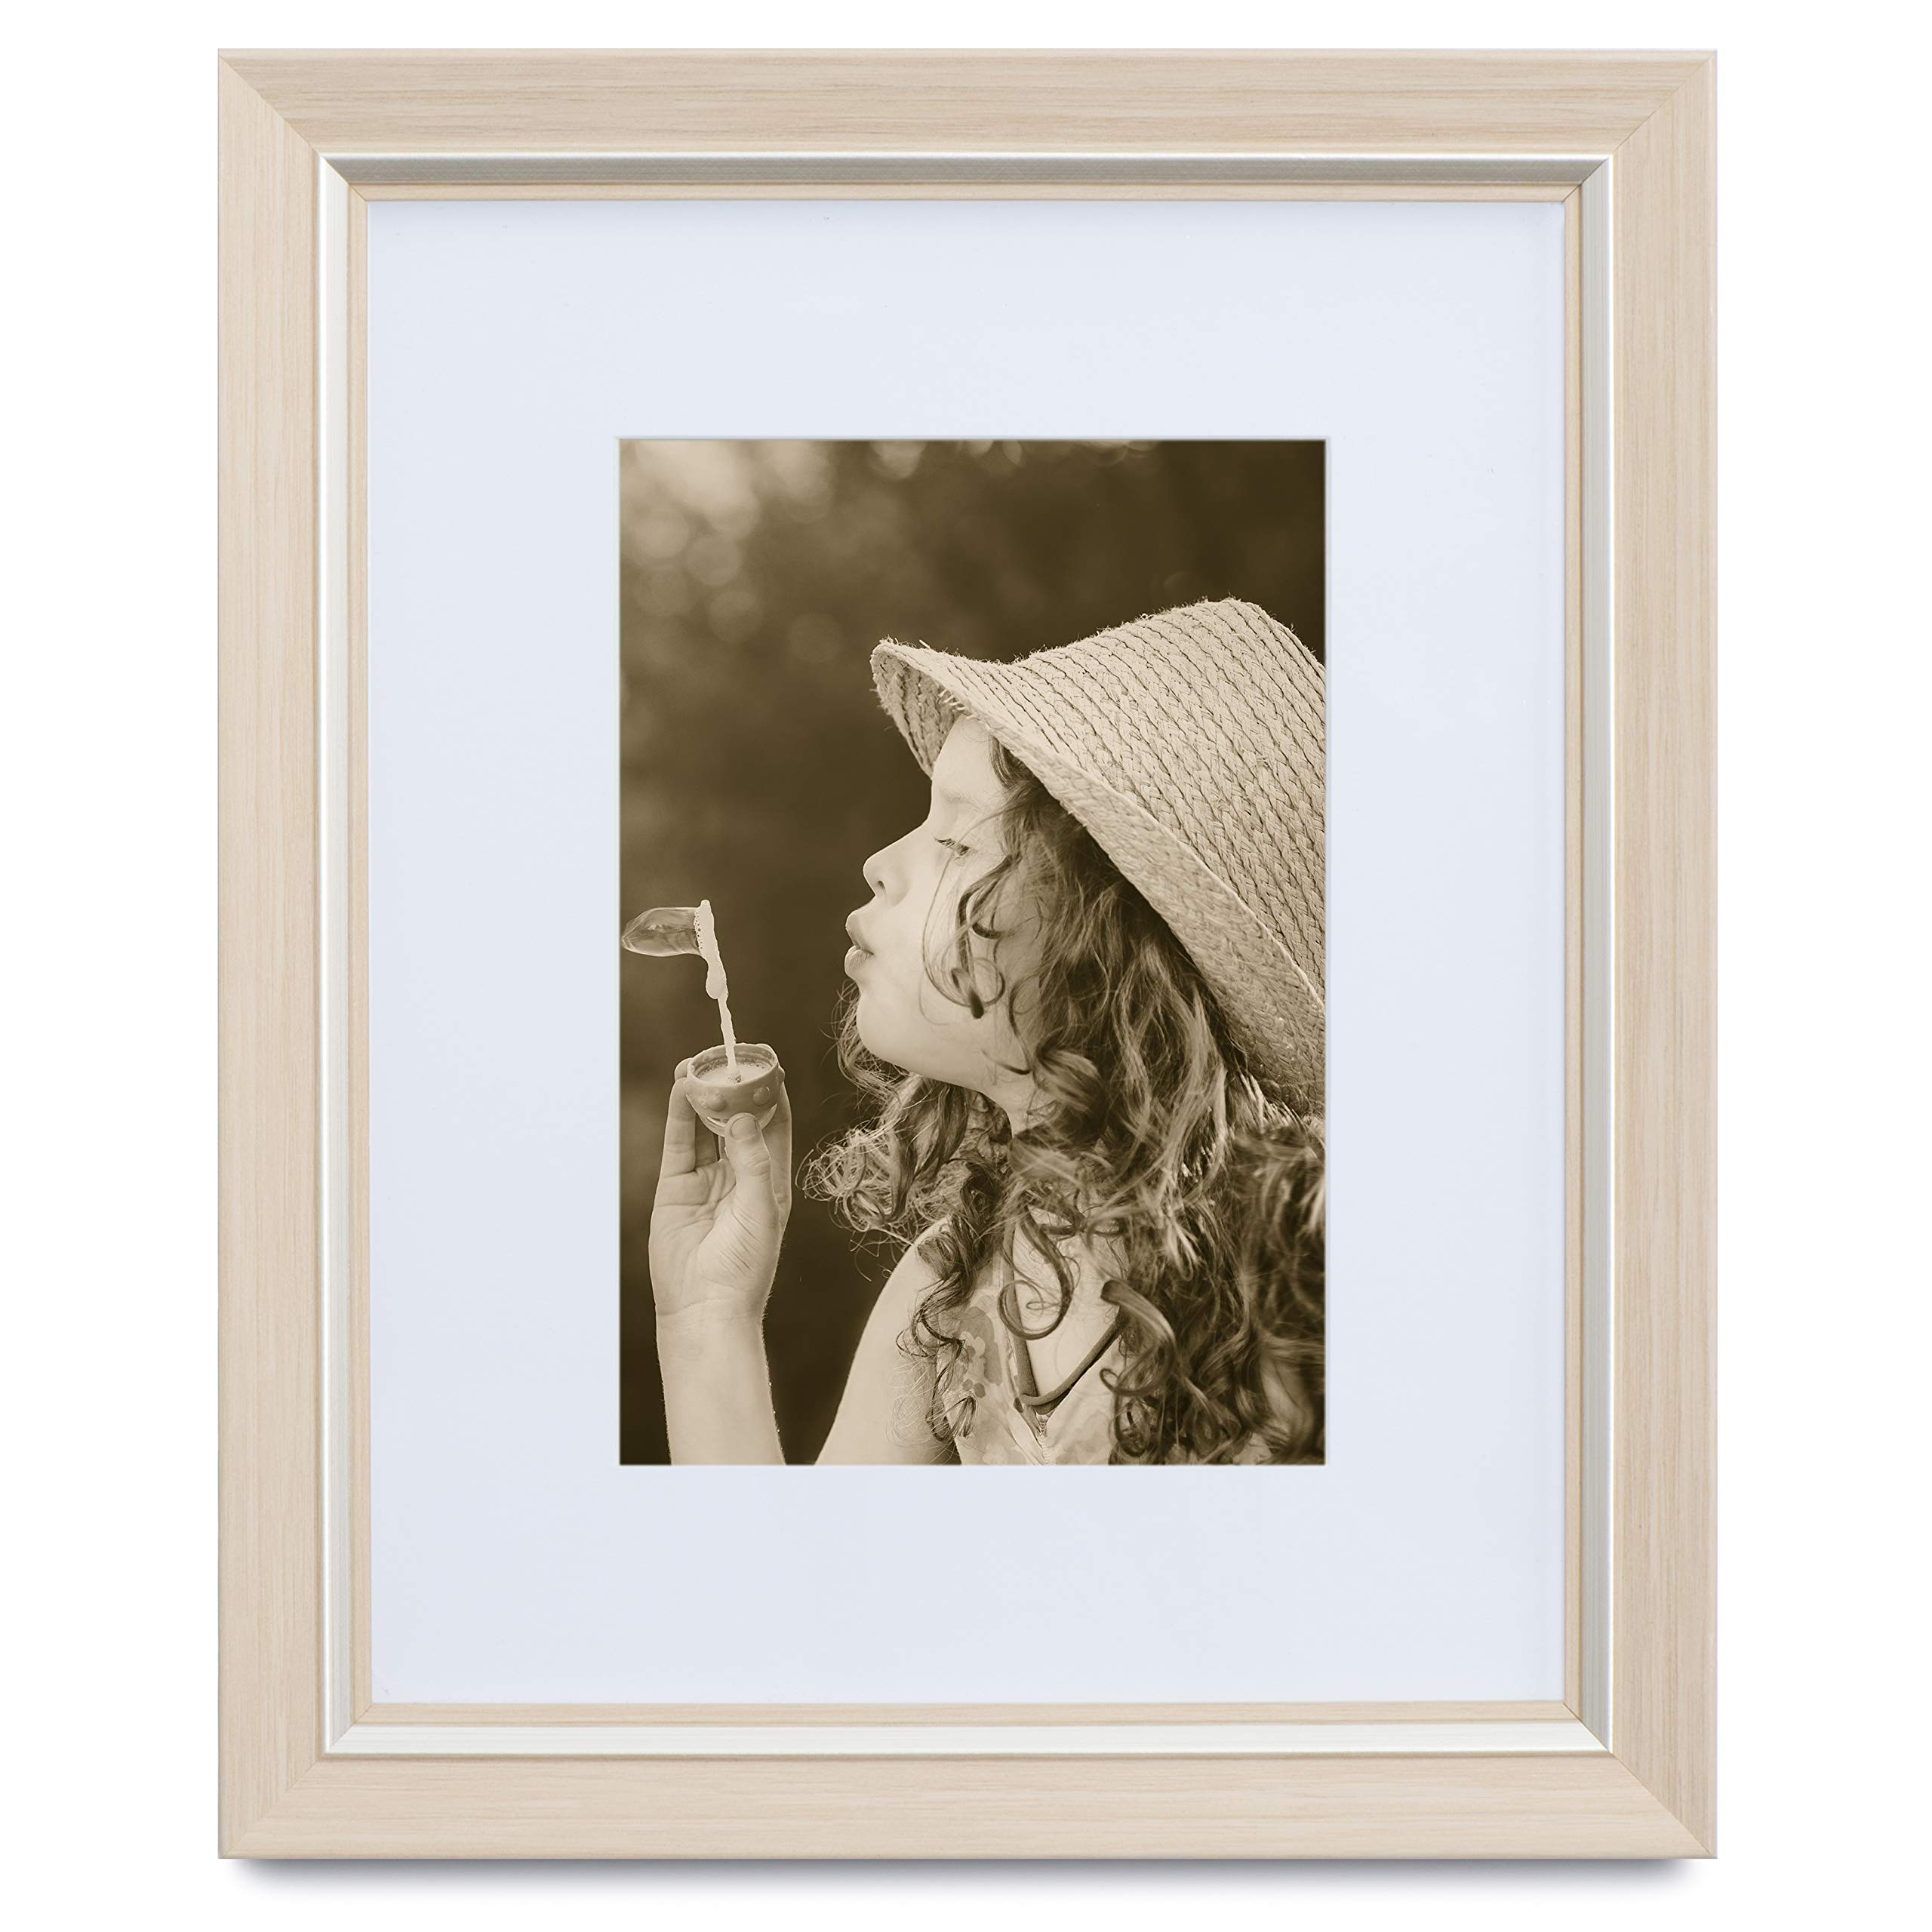 Eco-home 11x14 Picture Frame Off White - Made to Display Pictures 8x10 with Mat or 11x14 Without Mat, Sand Color, Hanging Kit Included.